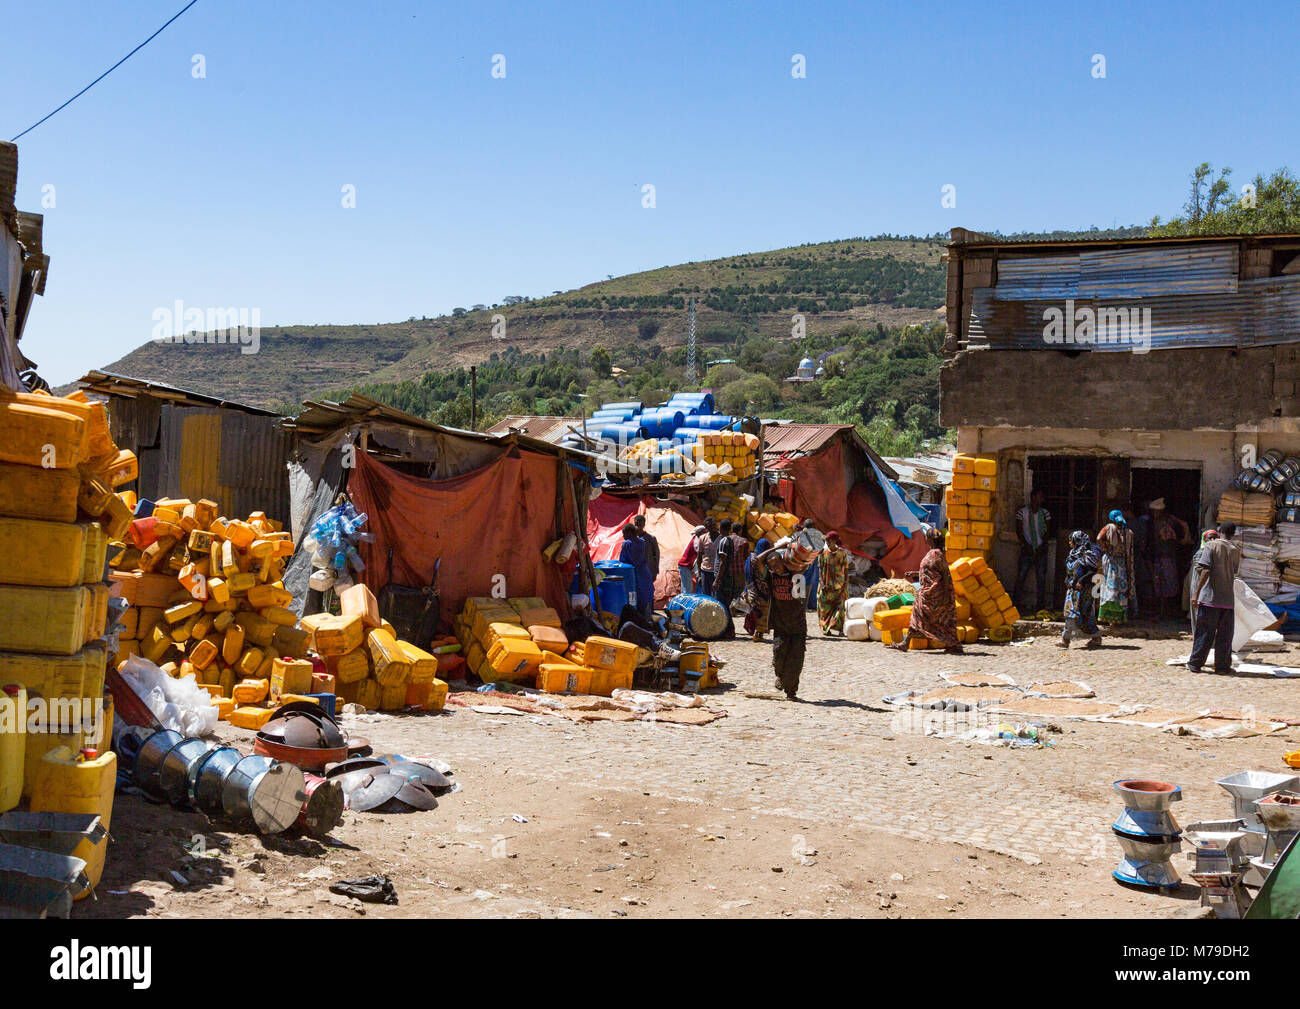 The old town market, Harari region, Harar, Ethiopia - Stock Image